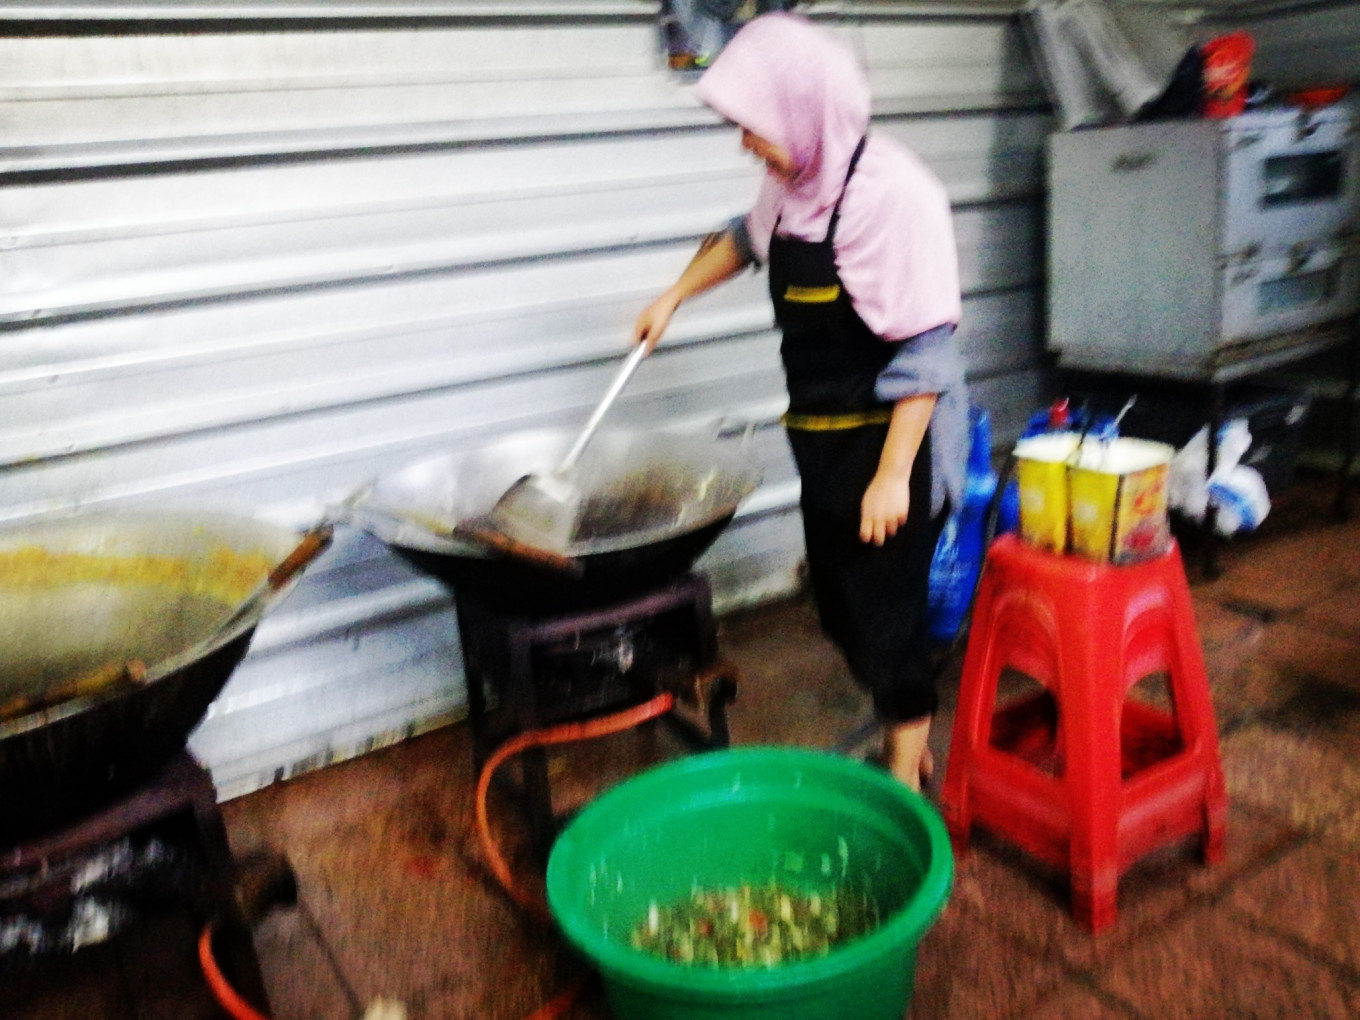 Compassion behind cooking 'iftar' meals